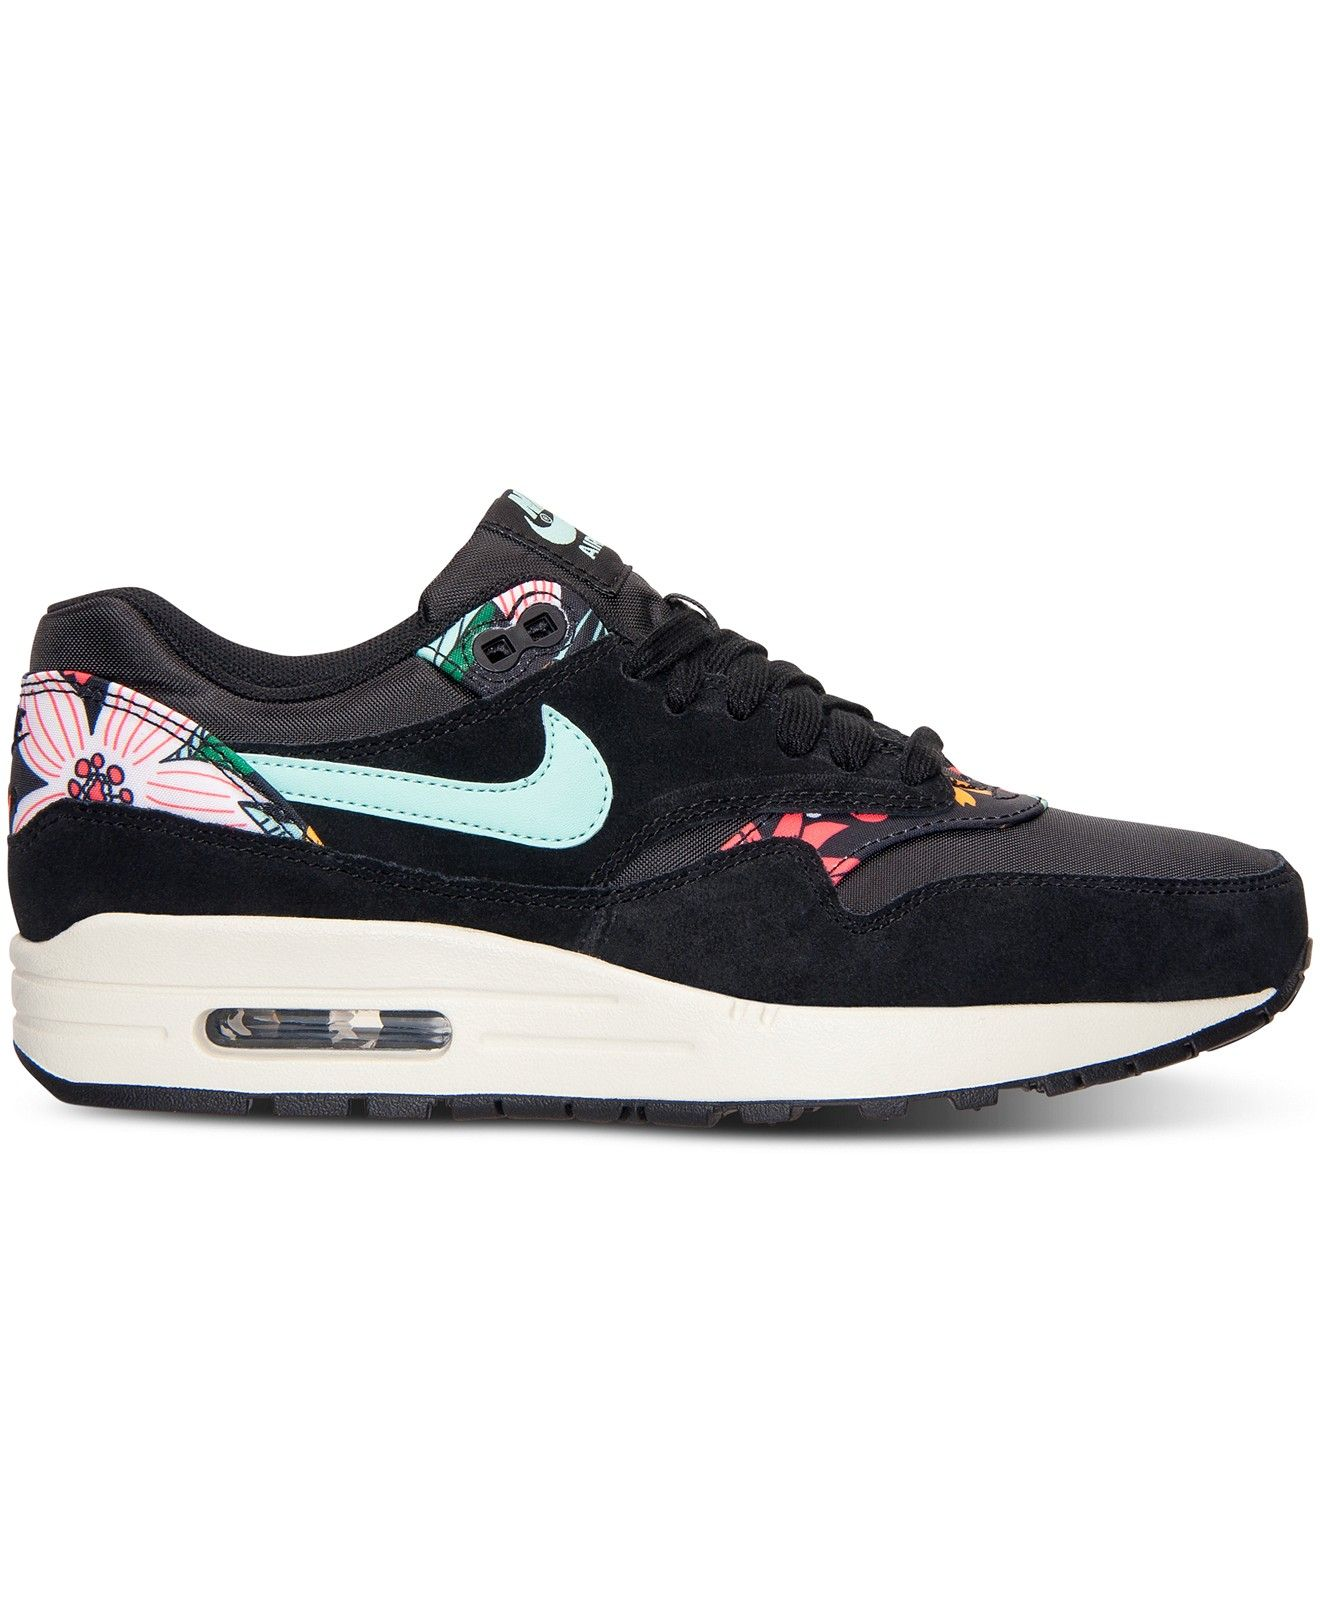 Running Air Women's 1 From Max Sneakers Finish Nike Line Aloha rCoWQdexB